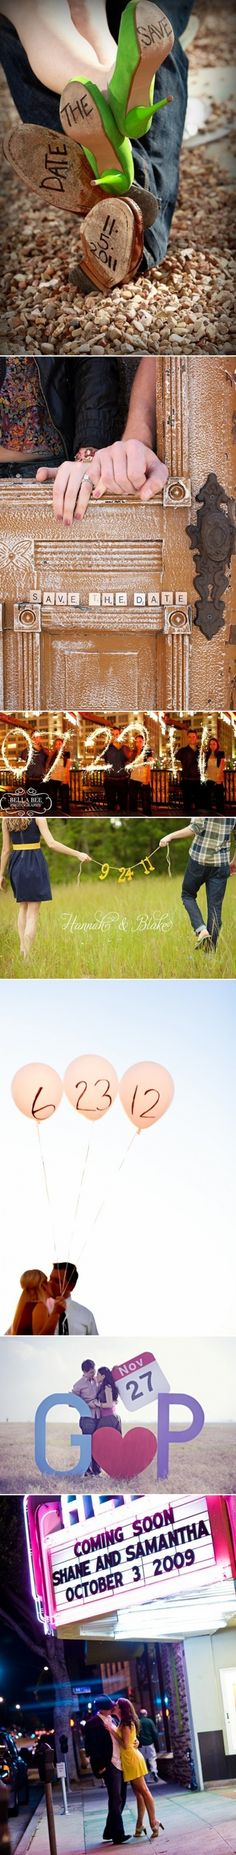 cute save the dates Even MORE if you click the image!